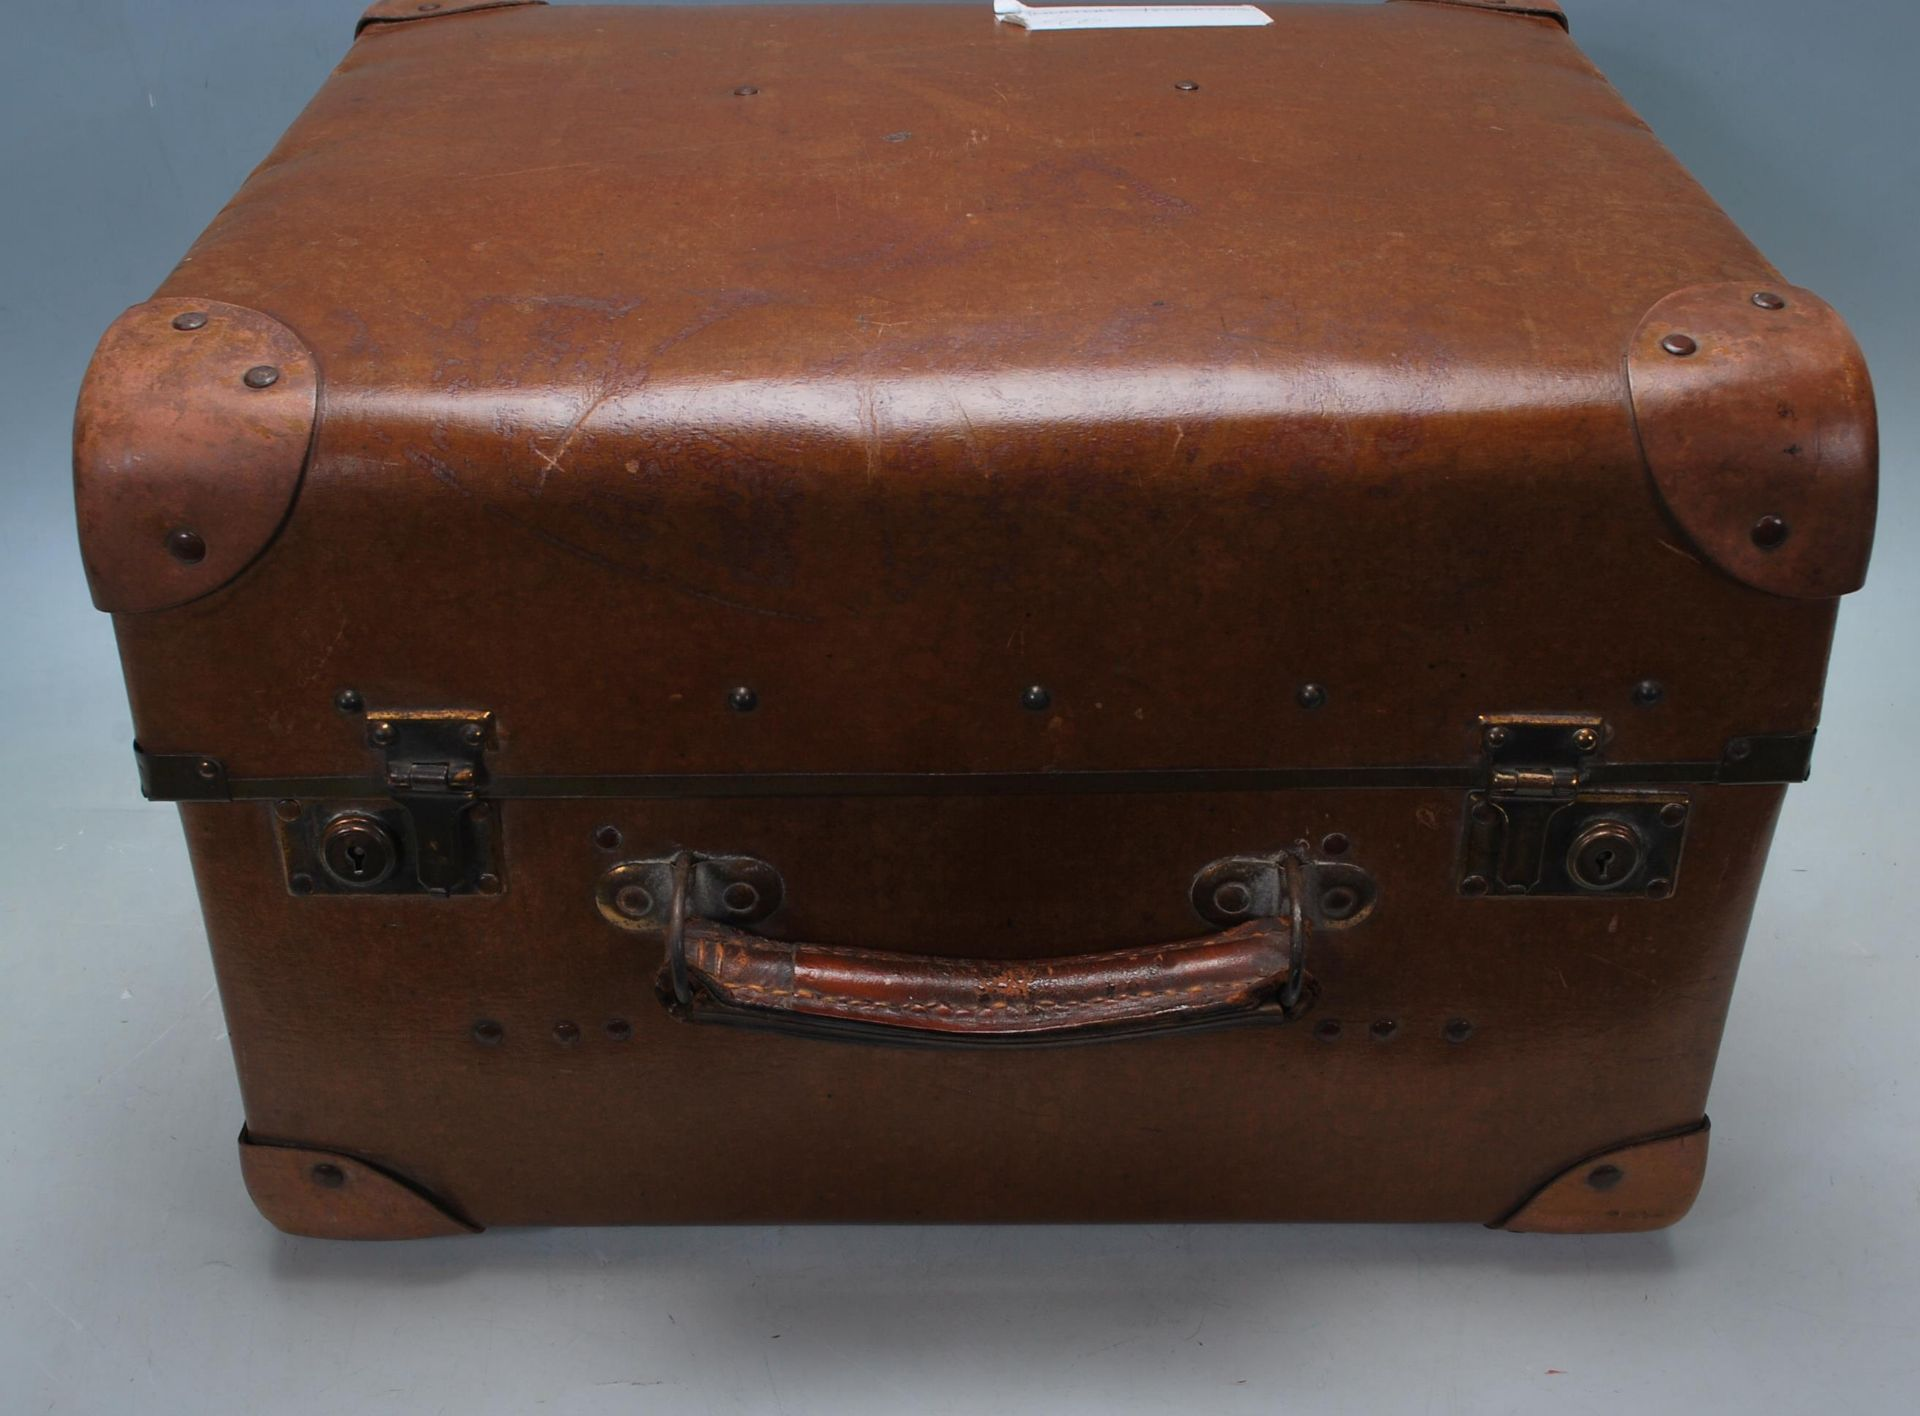 ANTIQUE EARLY 20TH CENTURY LEATHER SUITCASE - Image 2 of 5